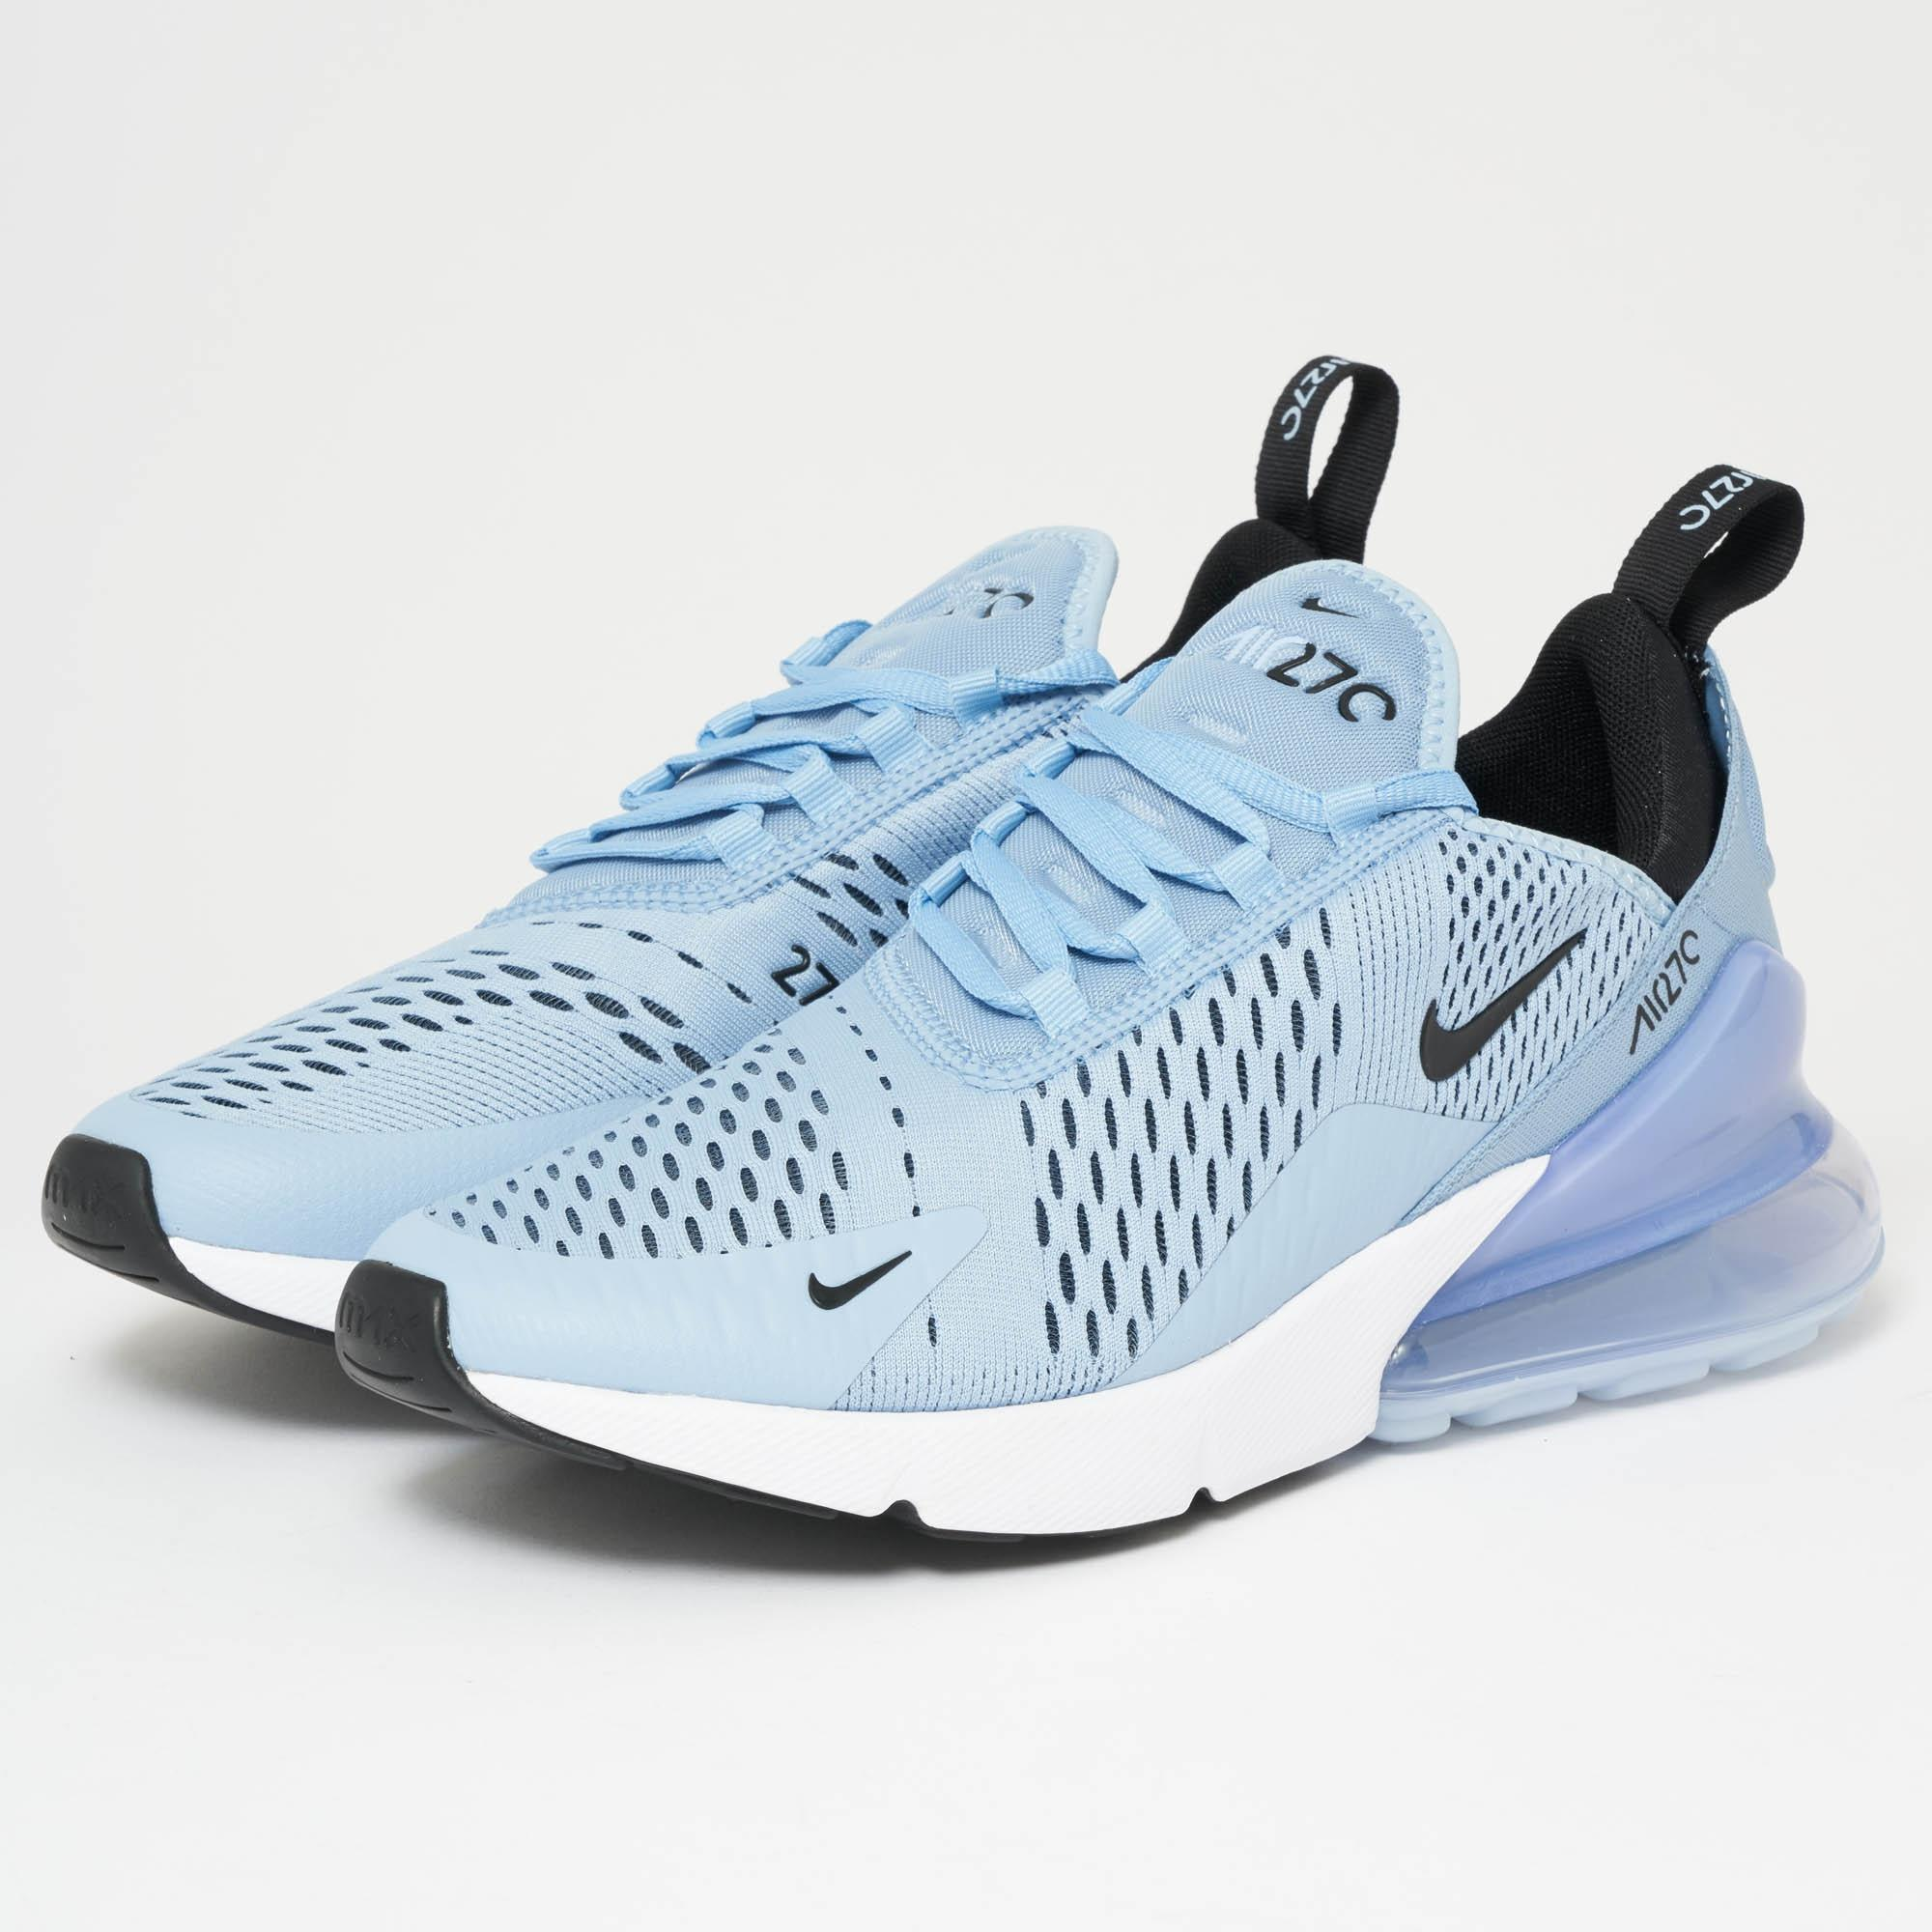 separation shoes 4f452 f558a Men's Air Max 270 - Leche Blue, Black & White